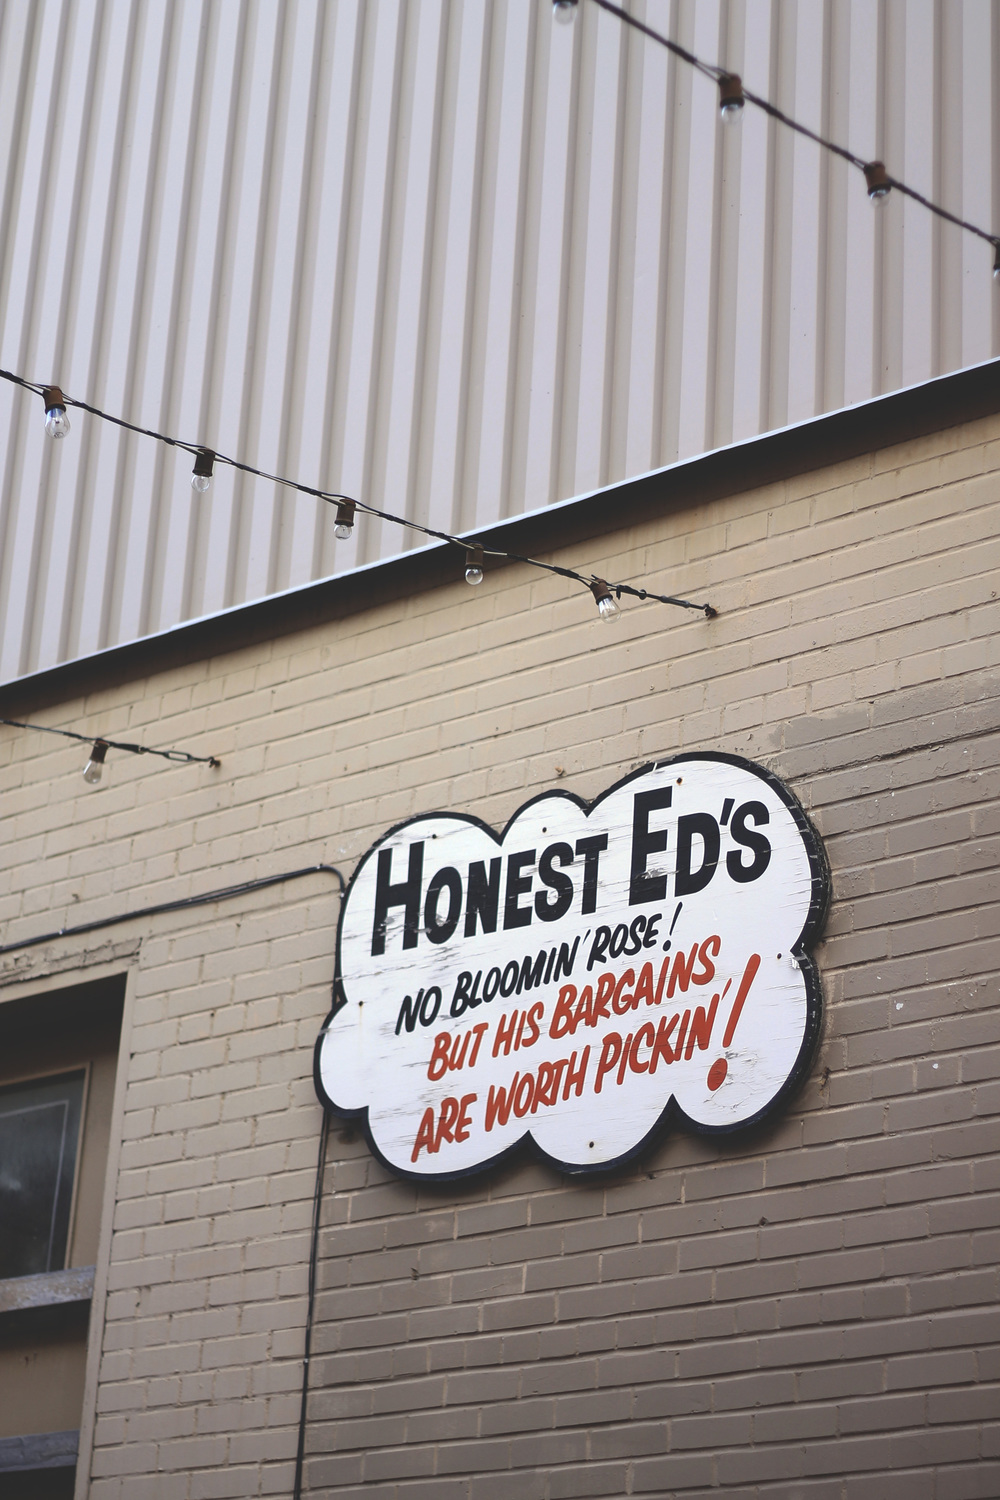 honest ed's rose pickin sign alley toronto landmark